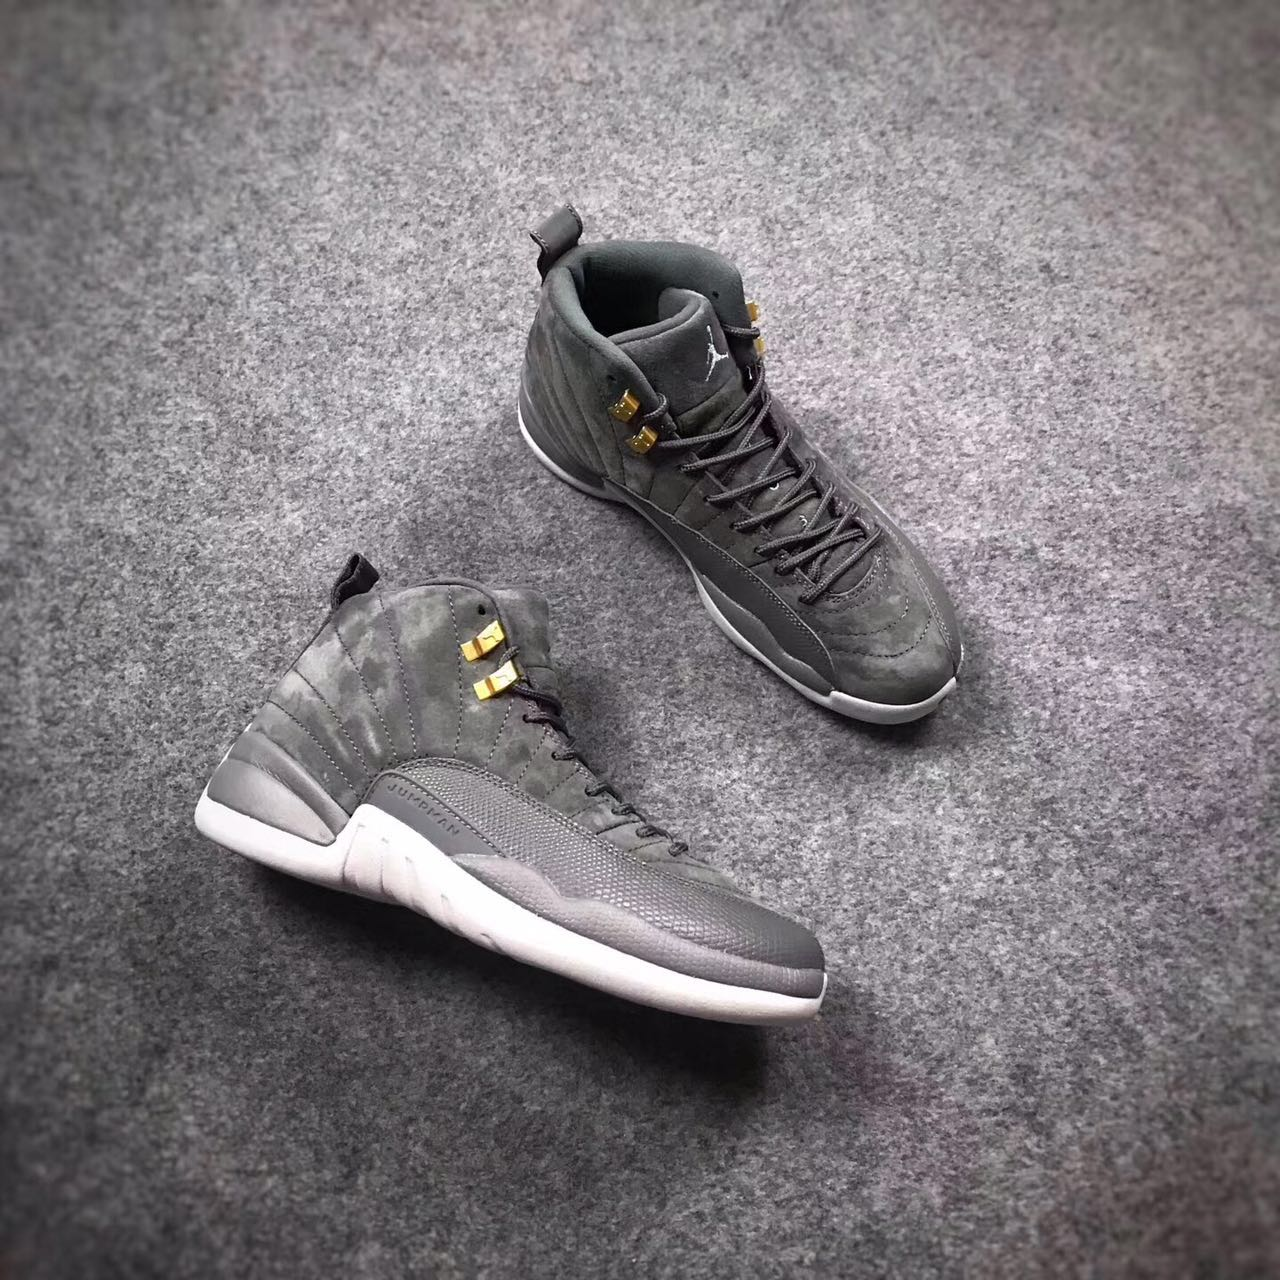 Air Jordan 12 Dark Grey Gold Shoes